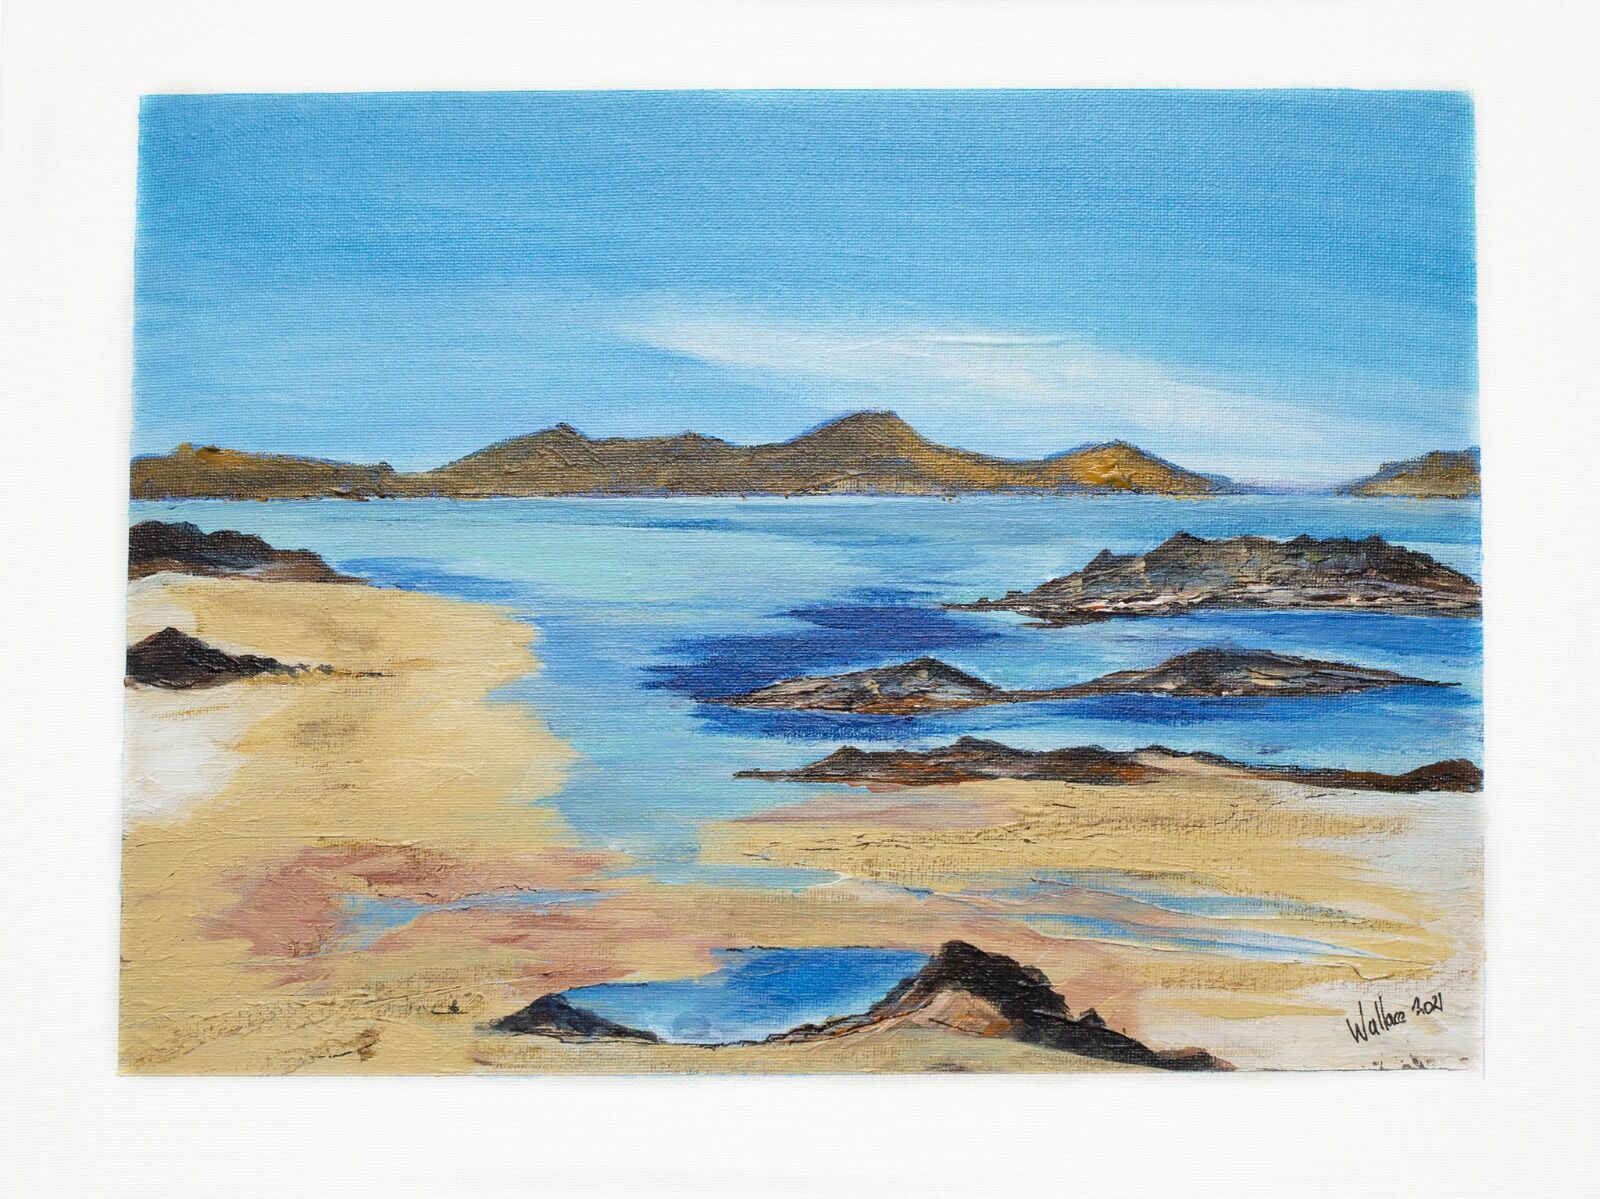 Sea and mountains - Outer Hebrides